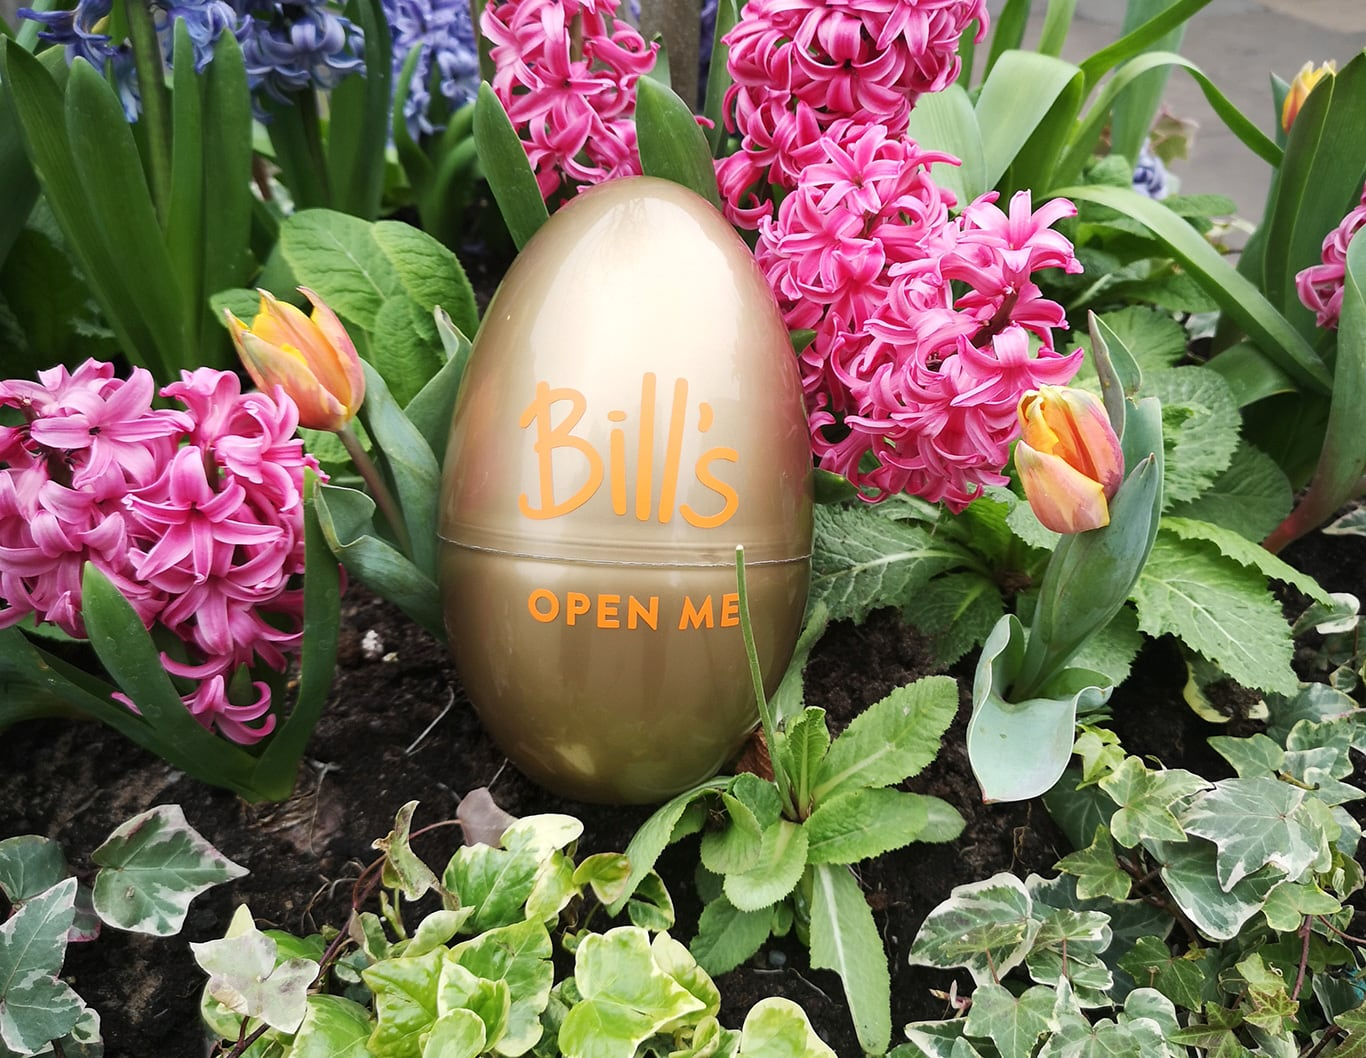 Easter Egg Join Bill S Easter Egg Hunt And Win A 100 Meal Mermaid Quay